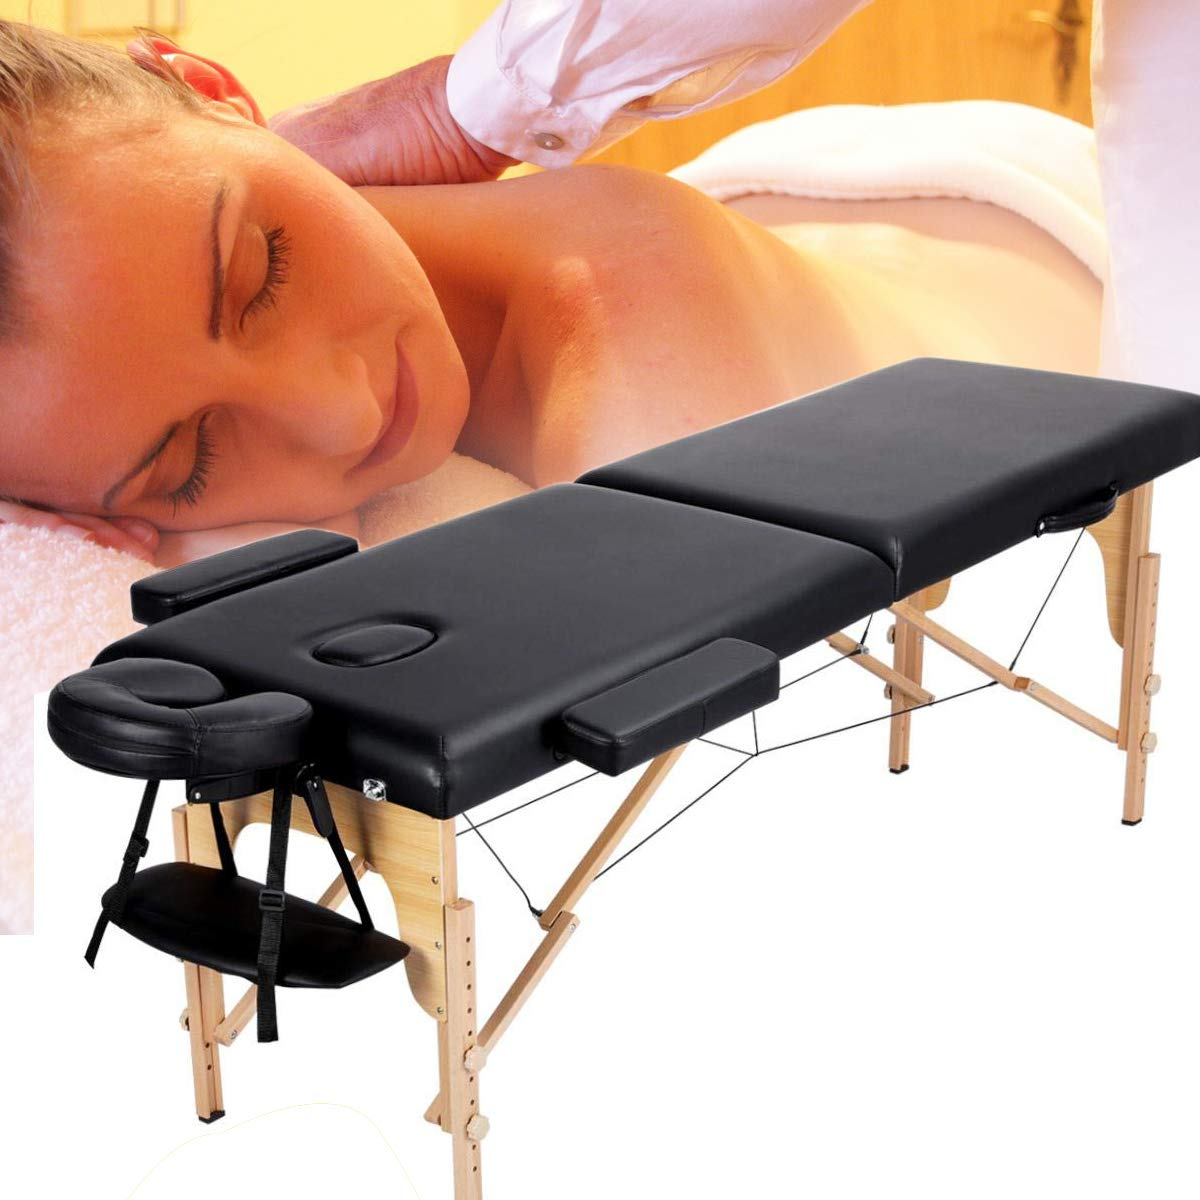 Massage Table,Portable Massage Table,Folding&Professional Premium Memory Foam Massage With Carrying Case,For Facial SPA Massage Table-Black